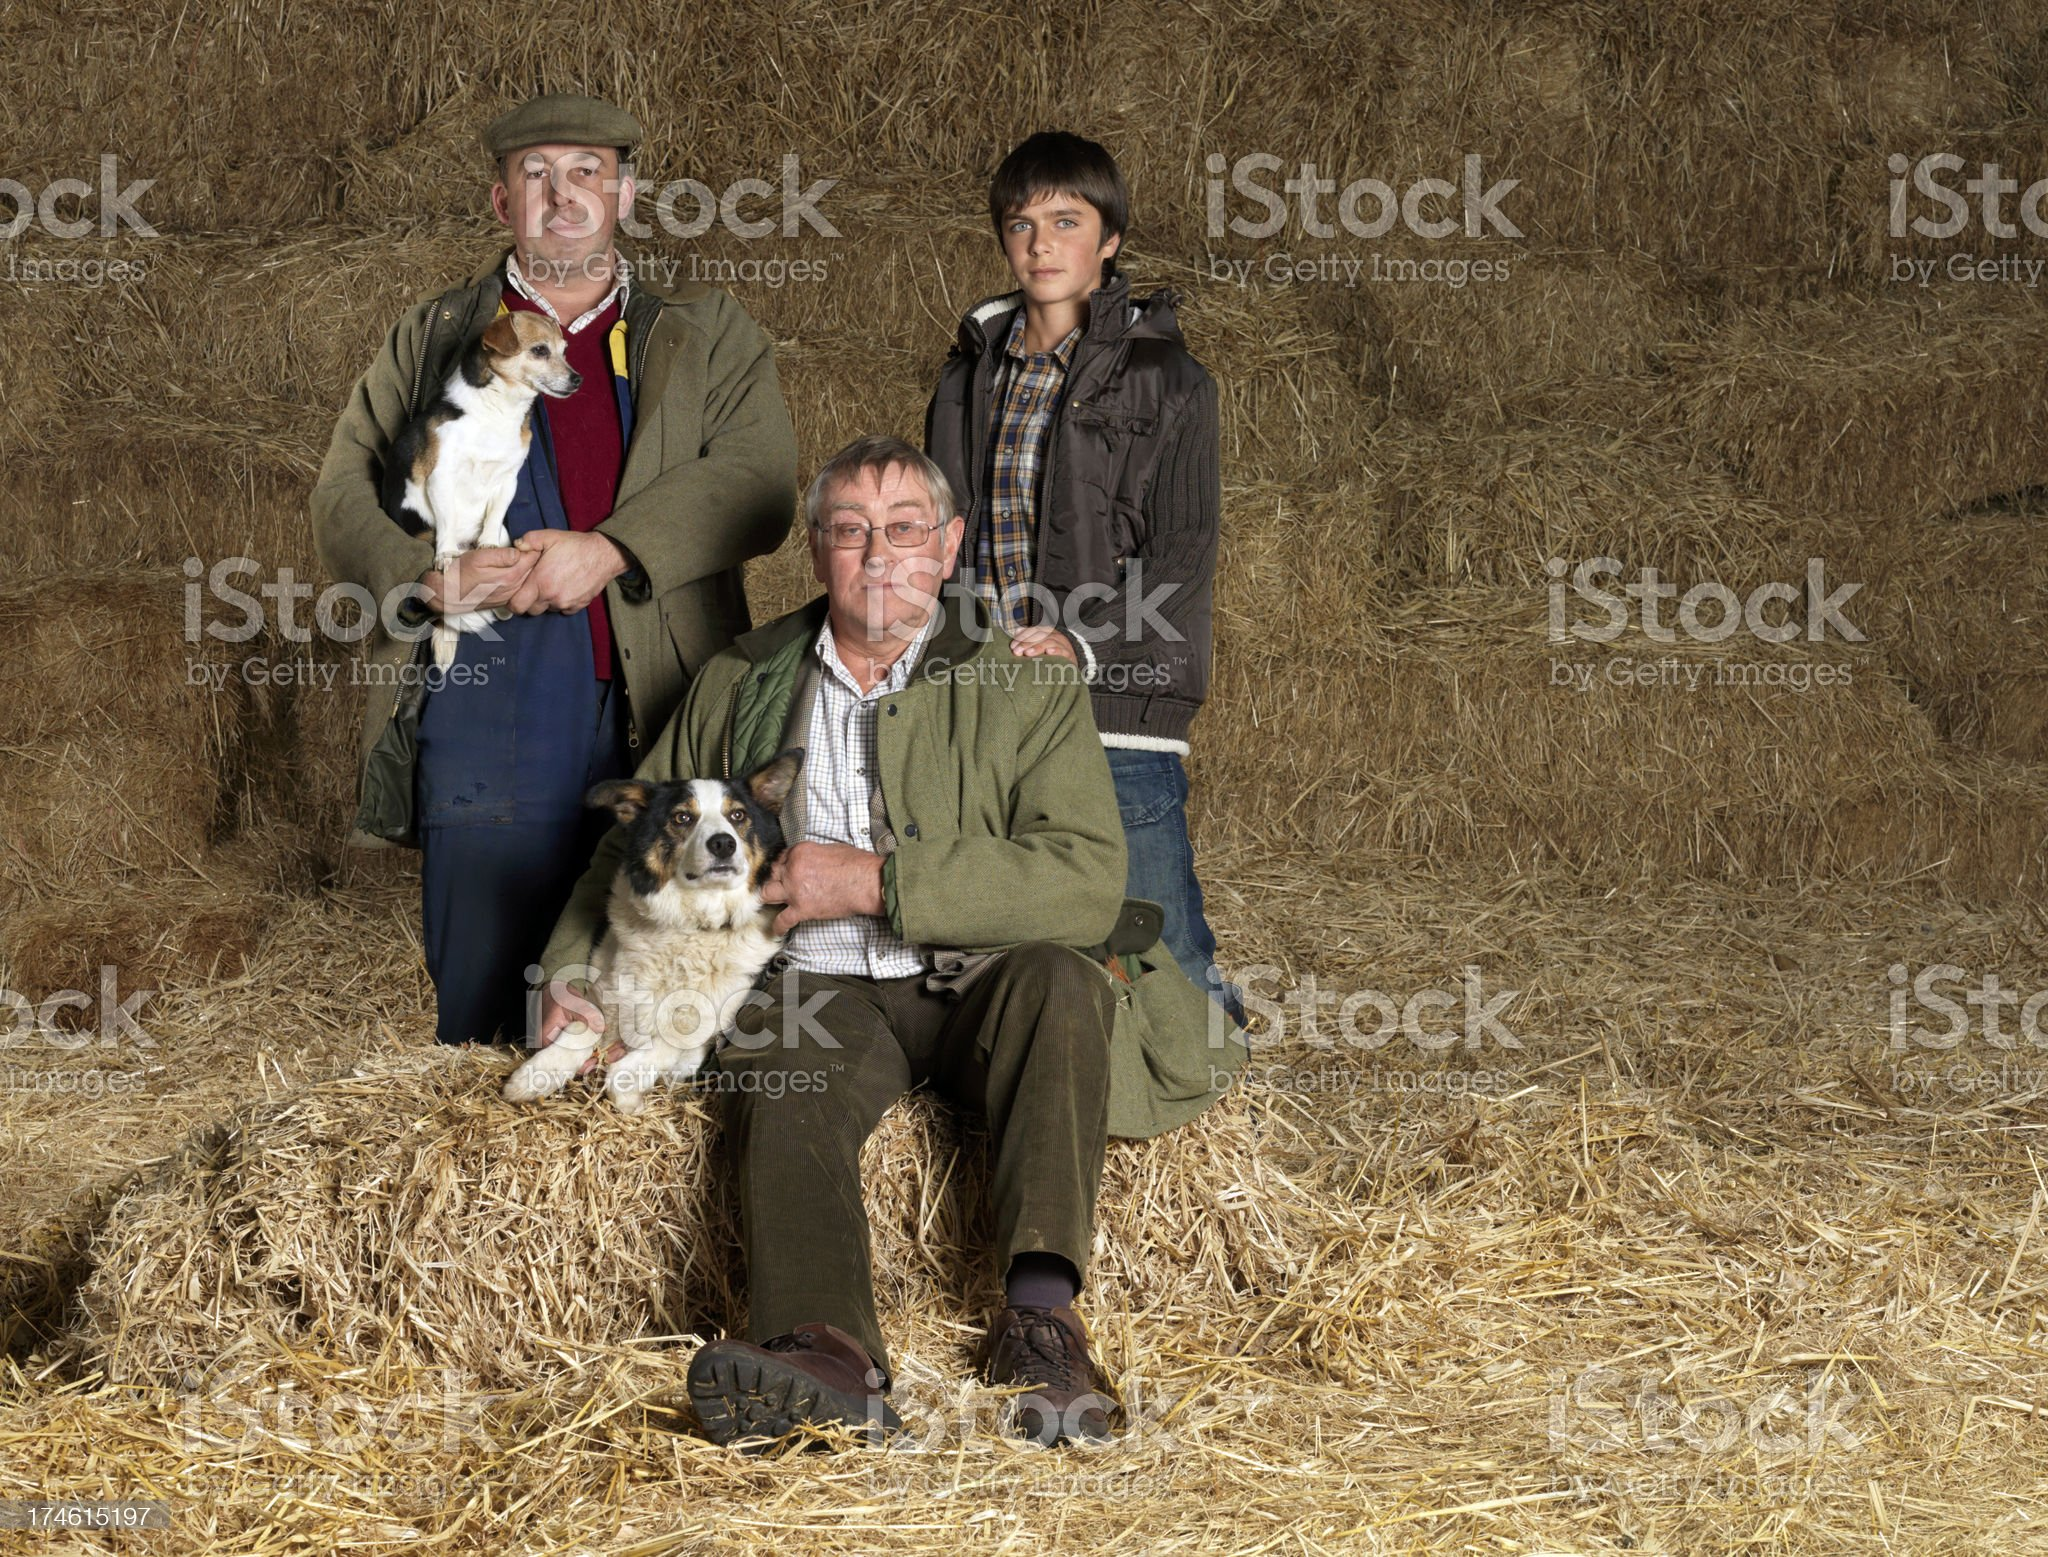 Farmers group royalty-free stock photo